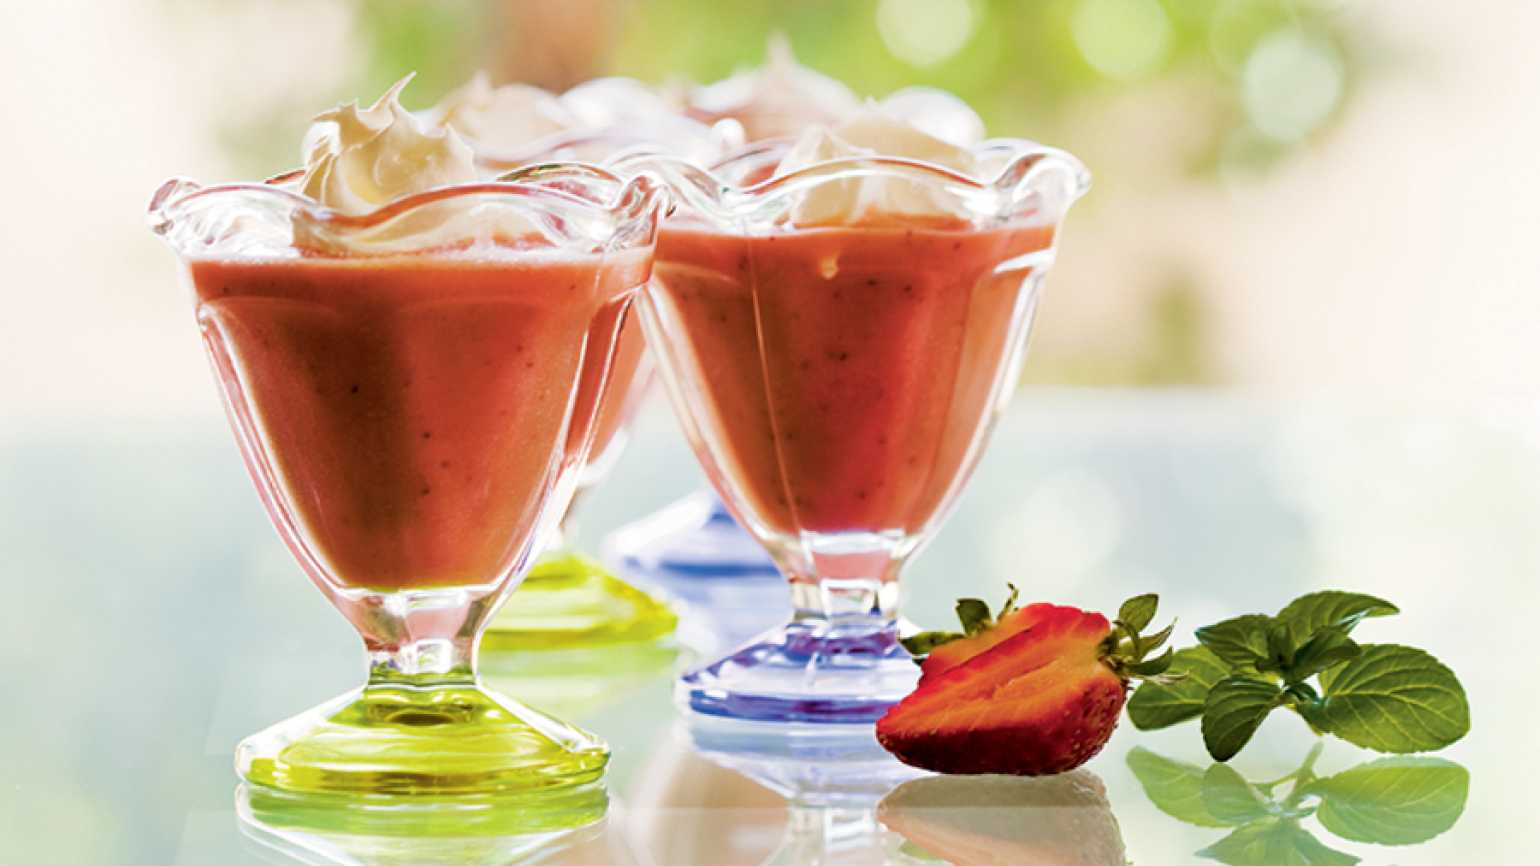 Fruity and refreshing strawberry soup